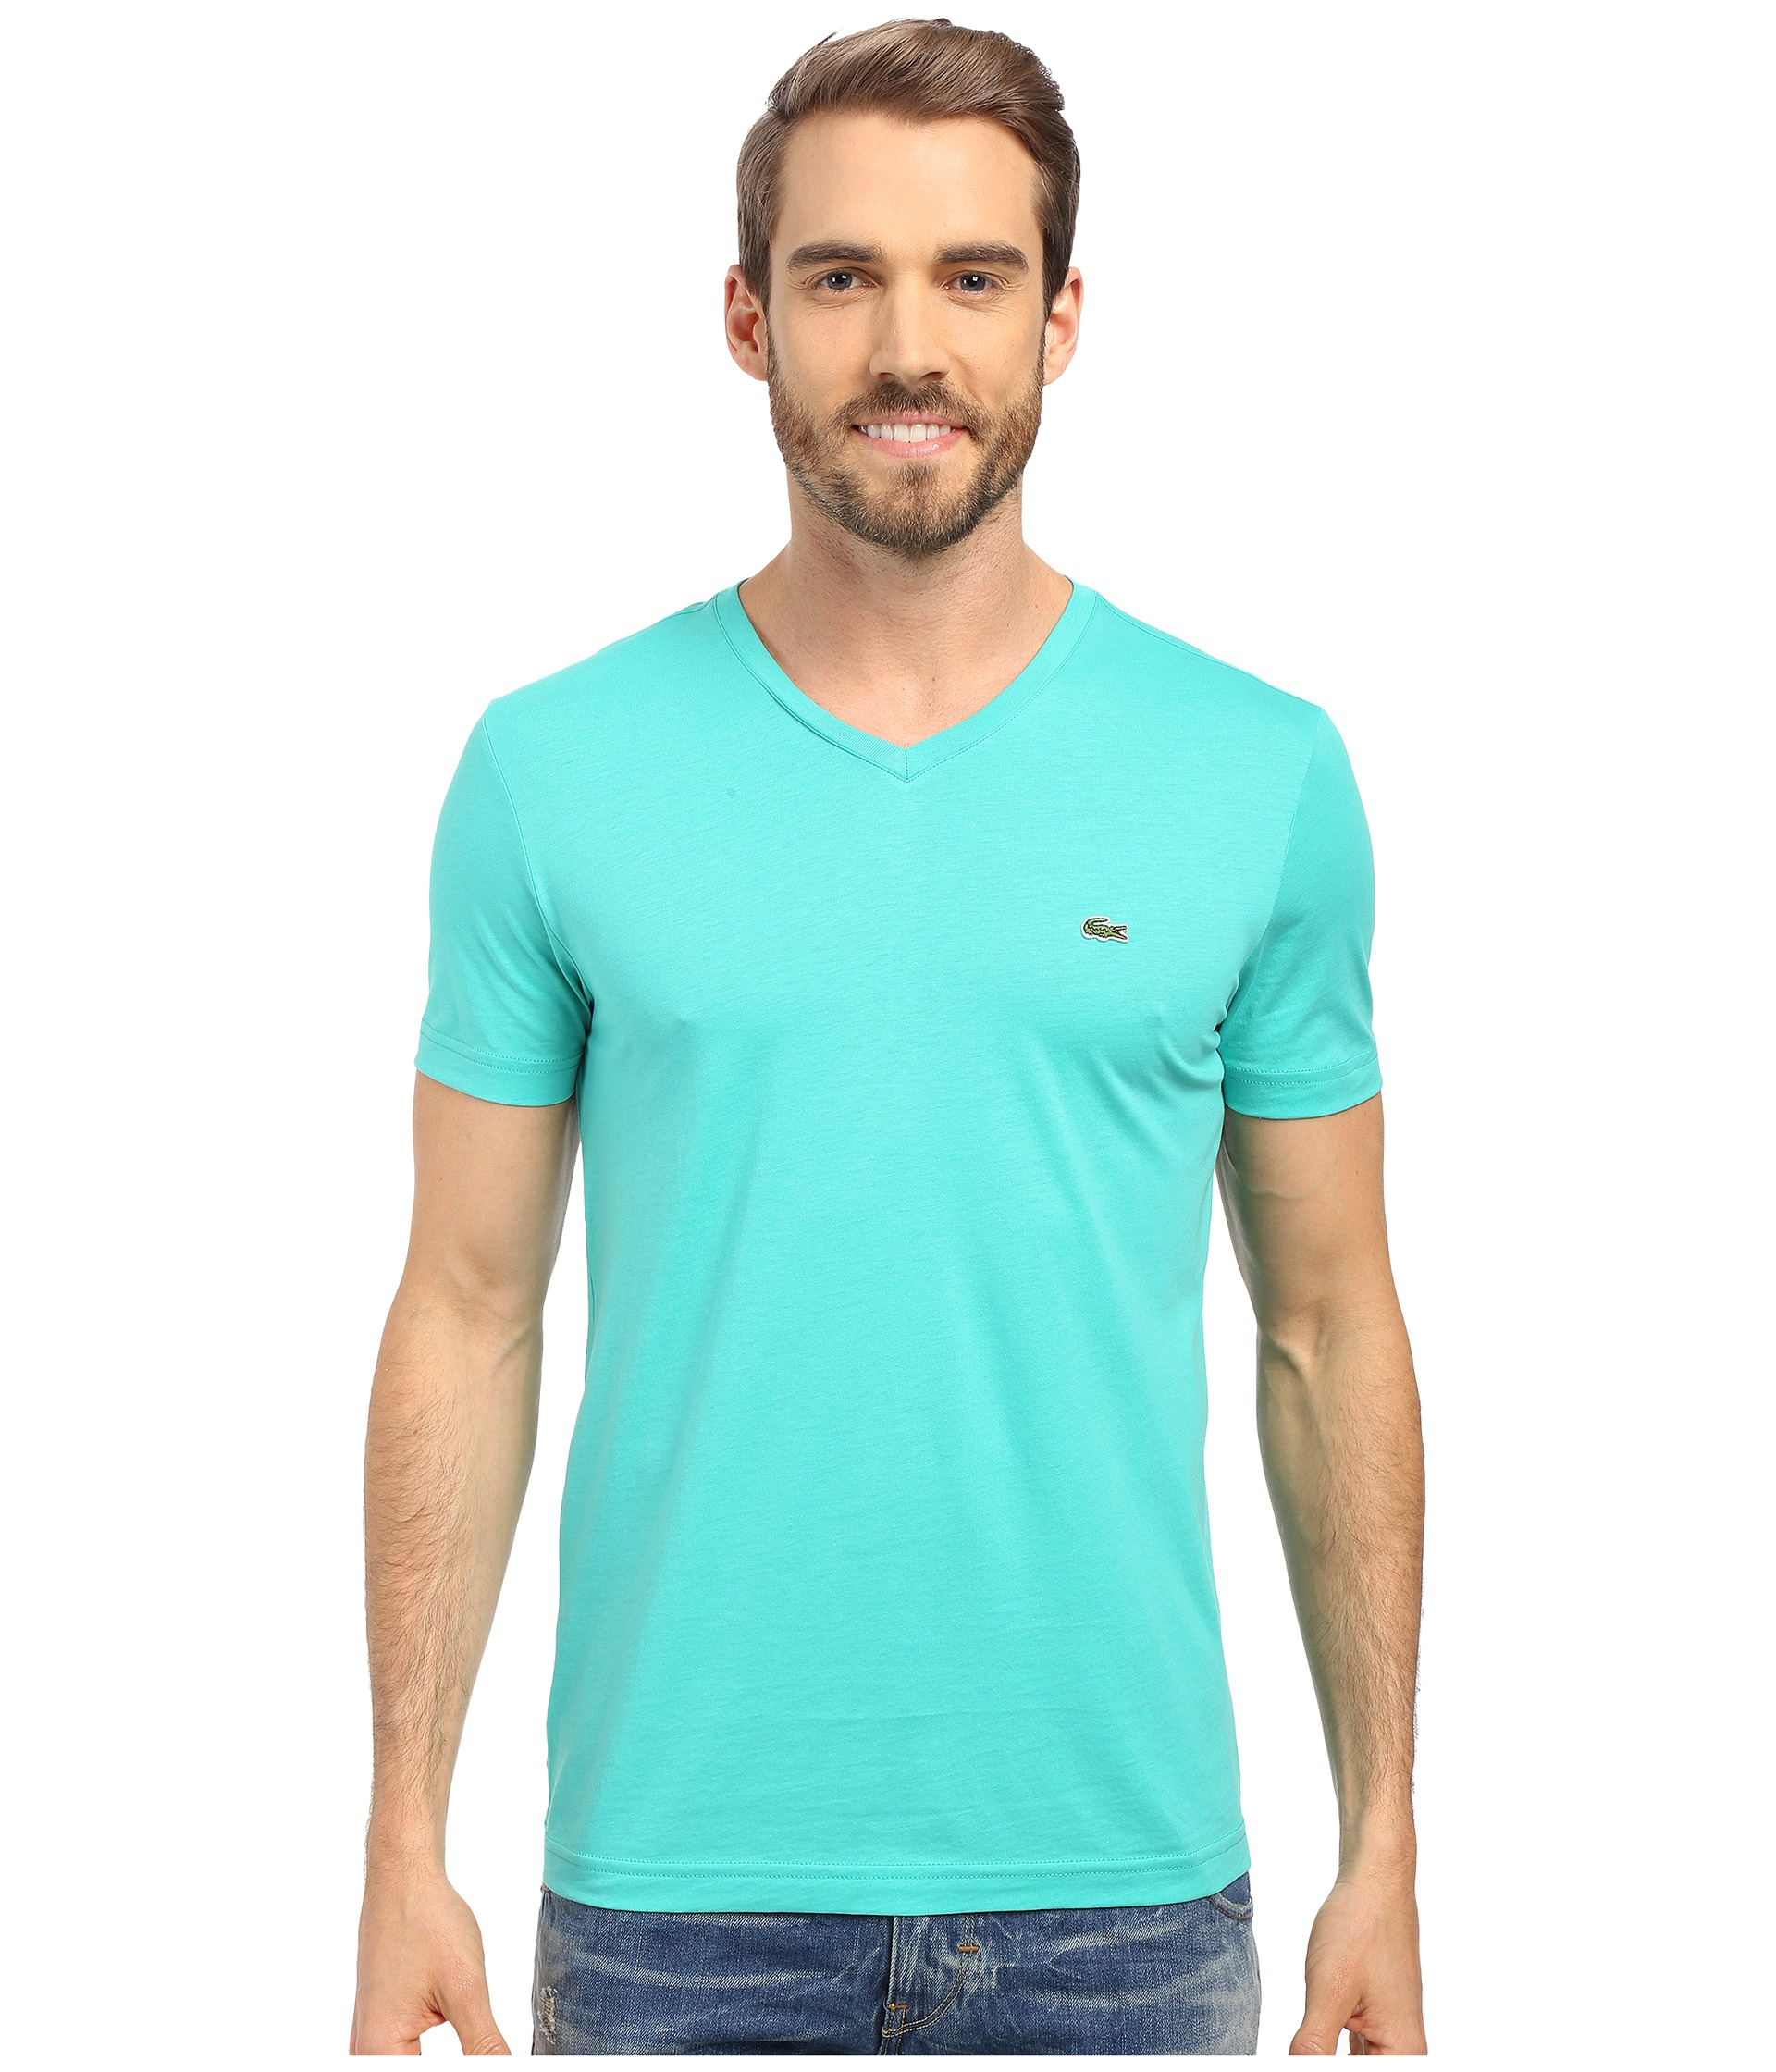 lyst lacoste s s pima jersey v neck t shirt in green for men. Black Bedroom Furniture Sets. Home Design Ideas